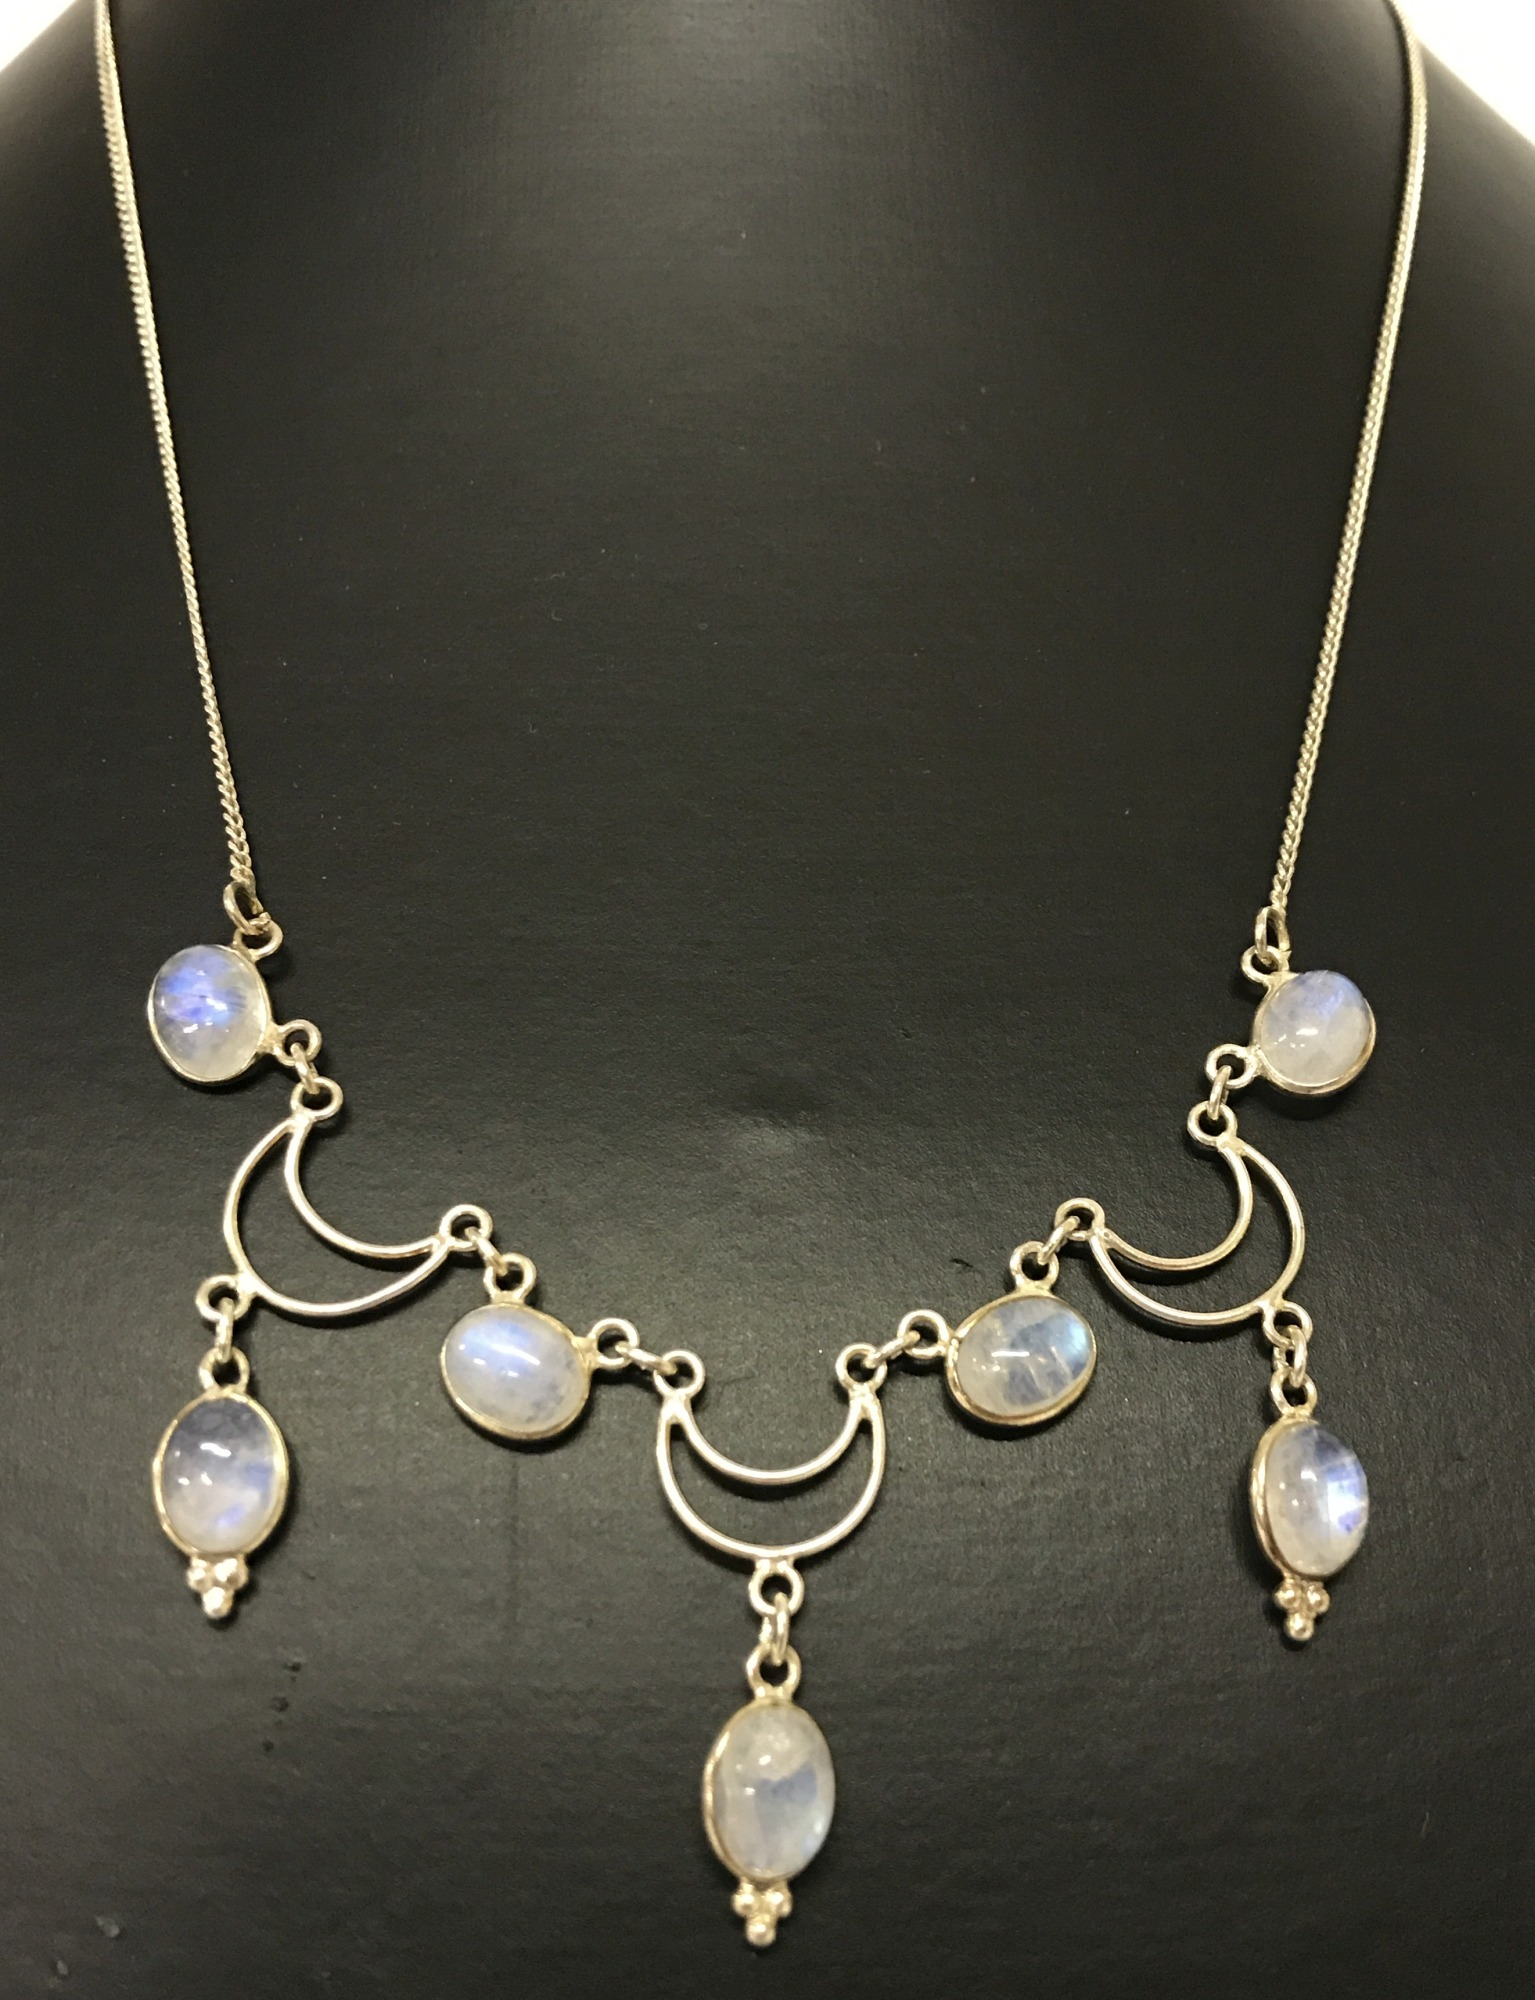 A decorative silver and moonstone necklace.